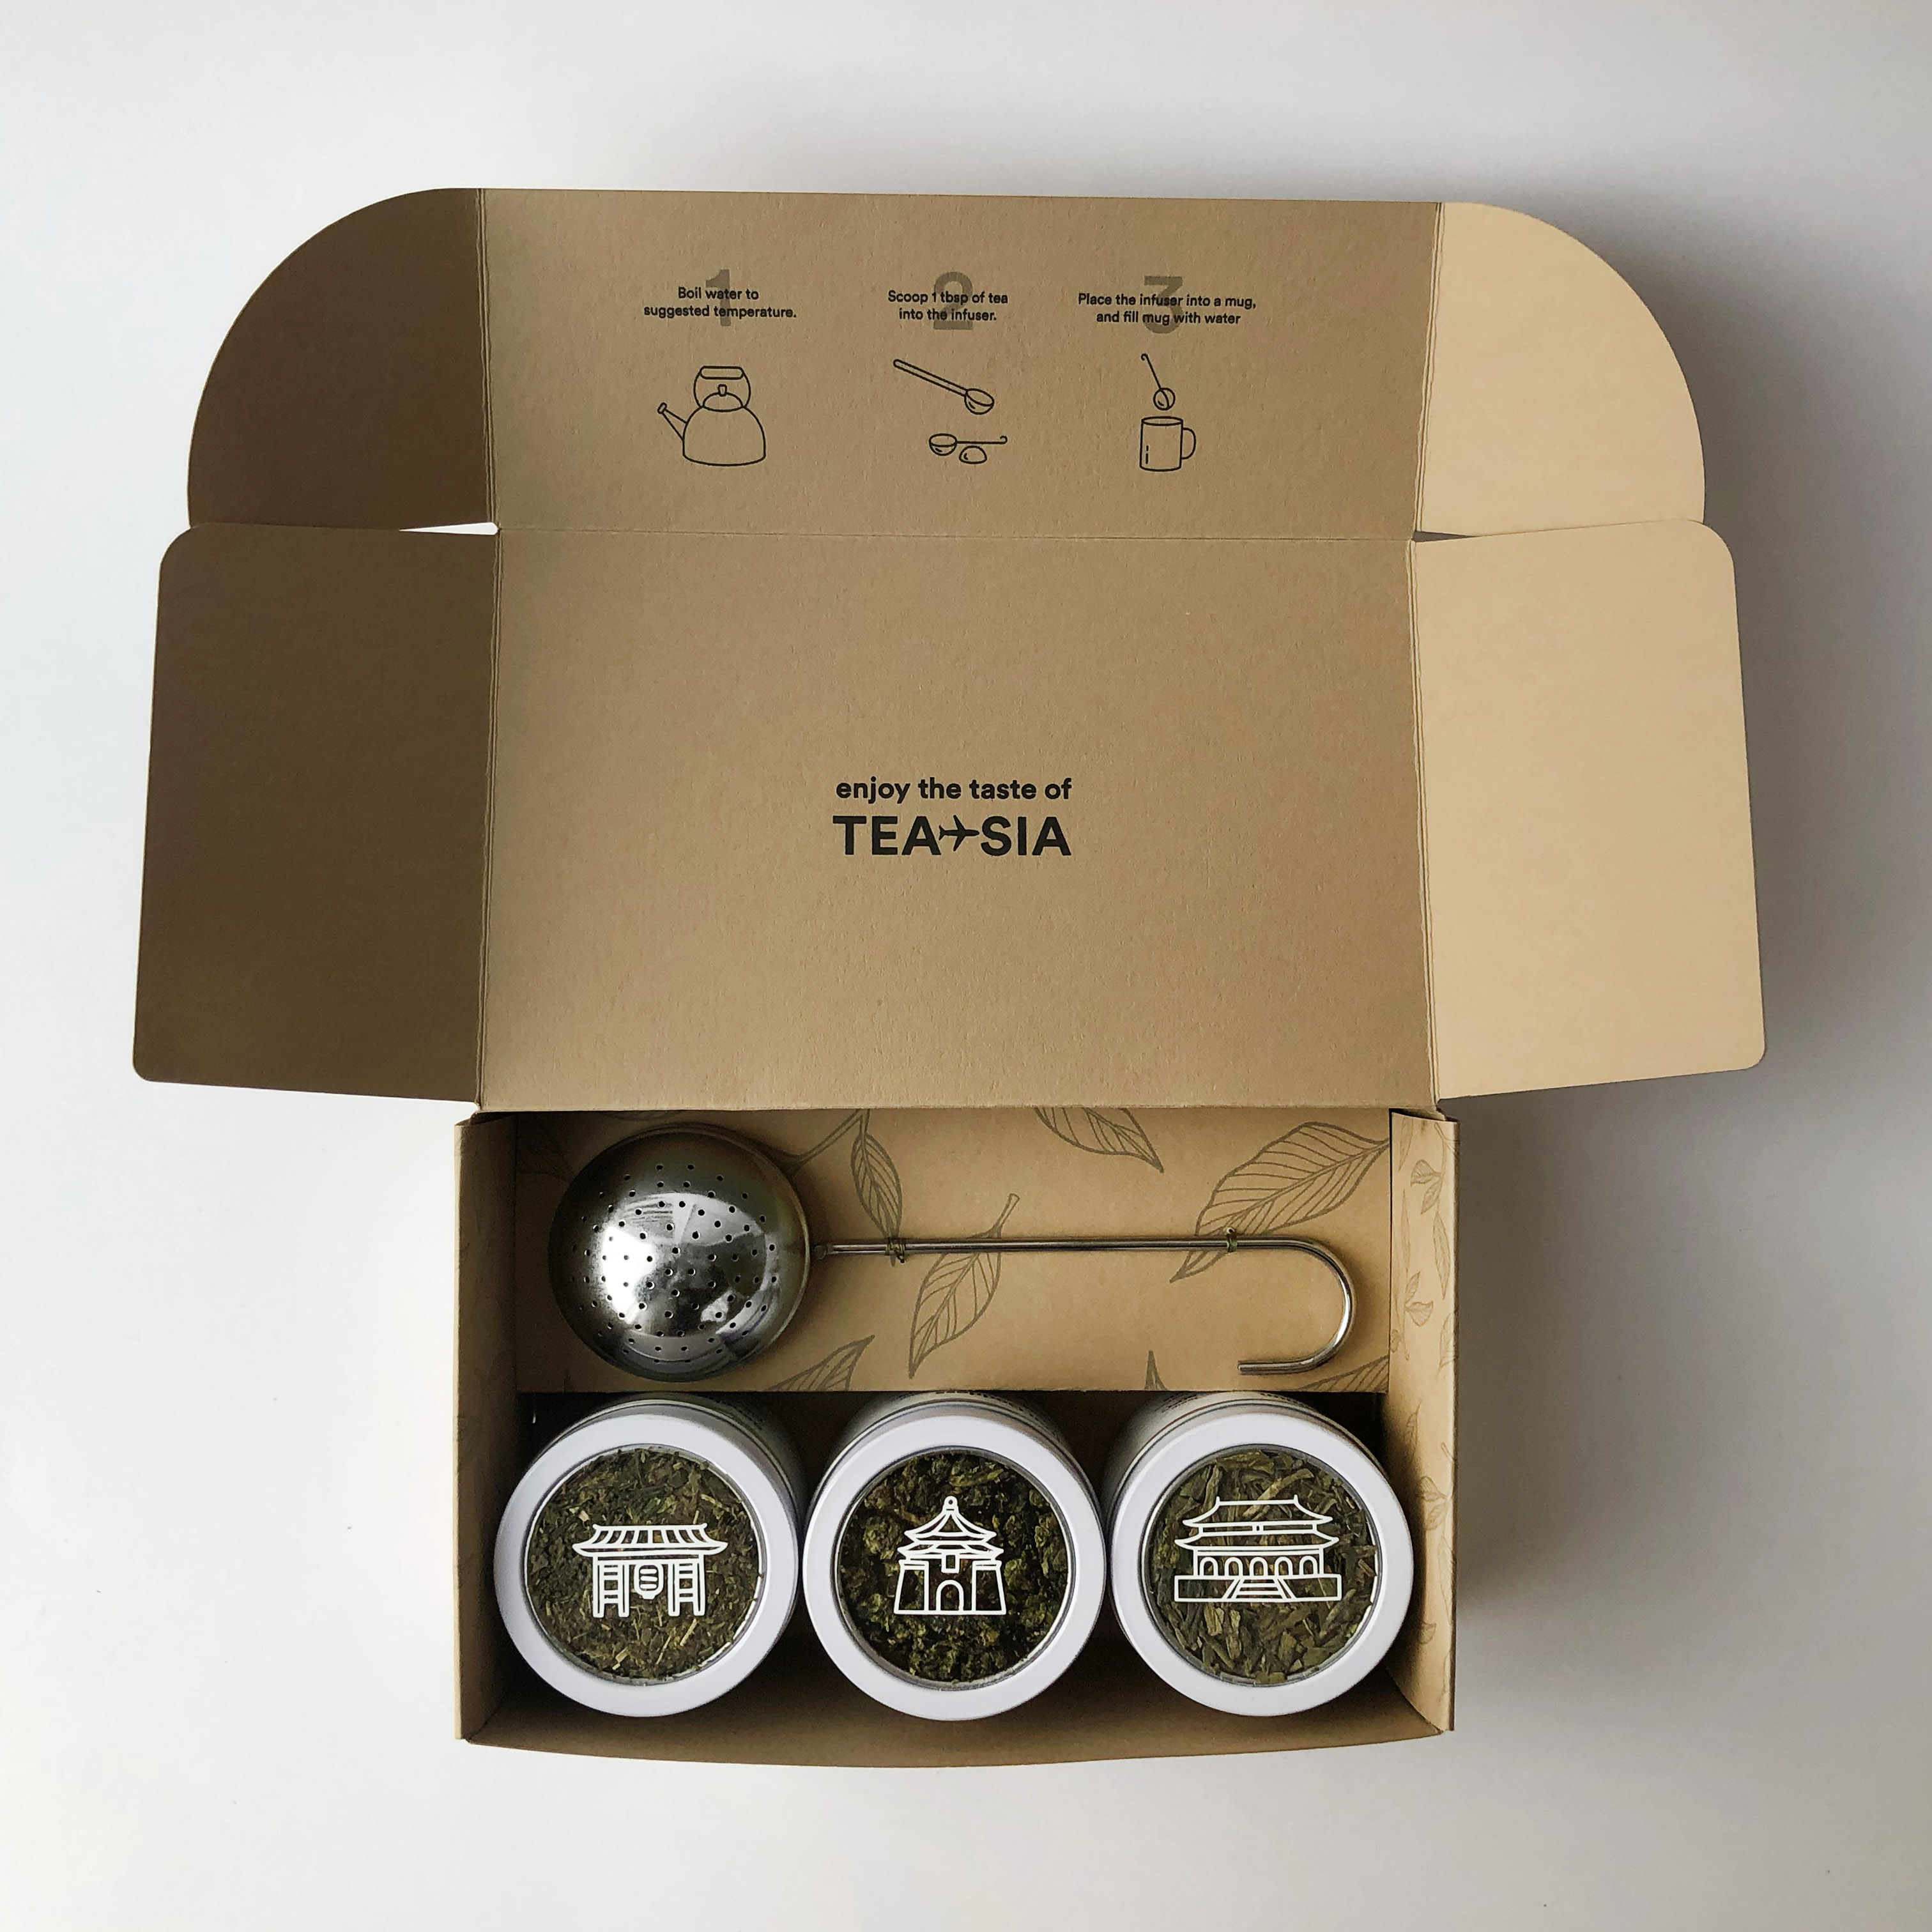 Open box with tea tins.